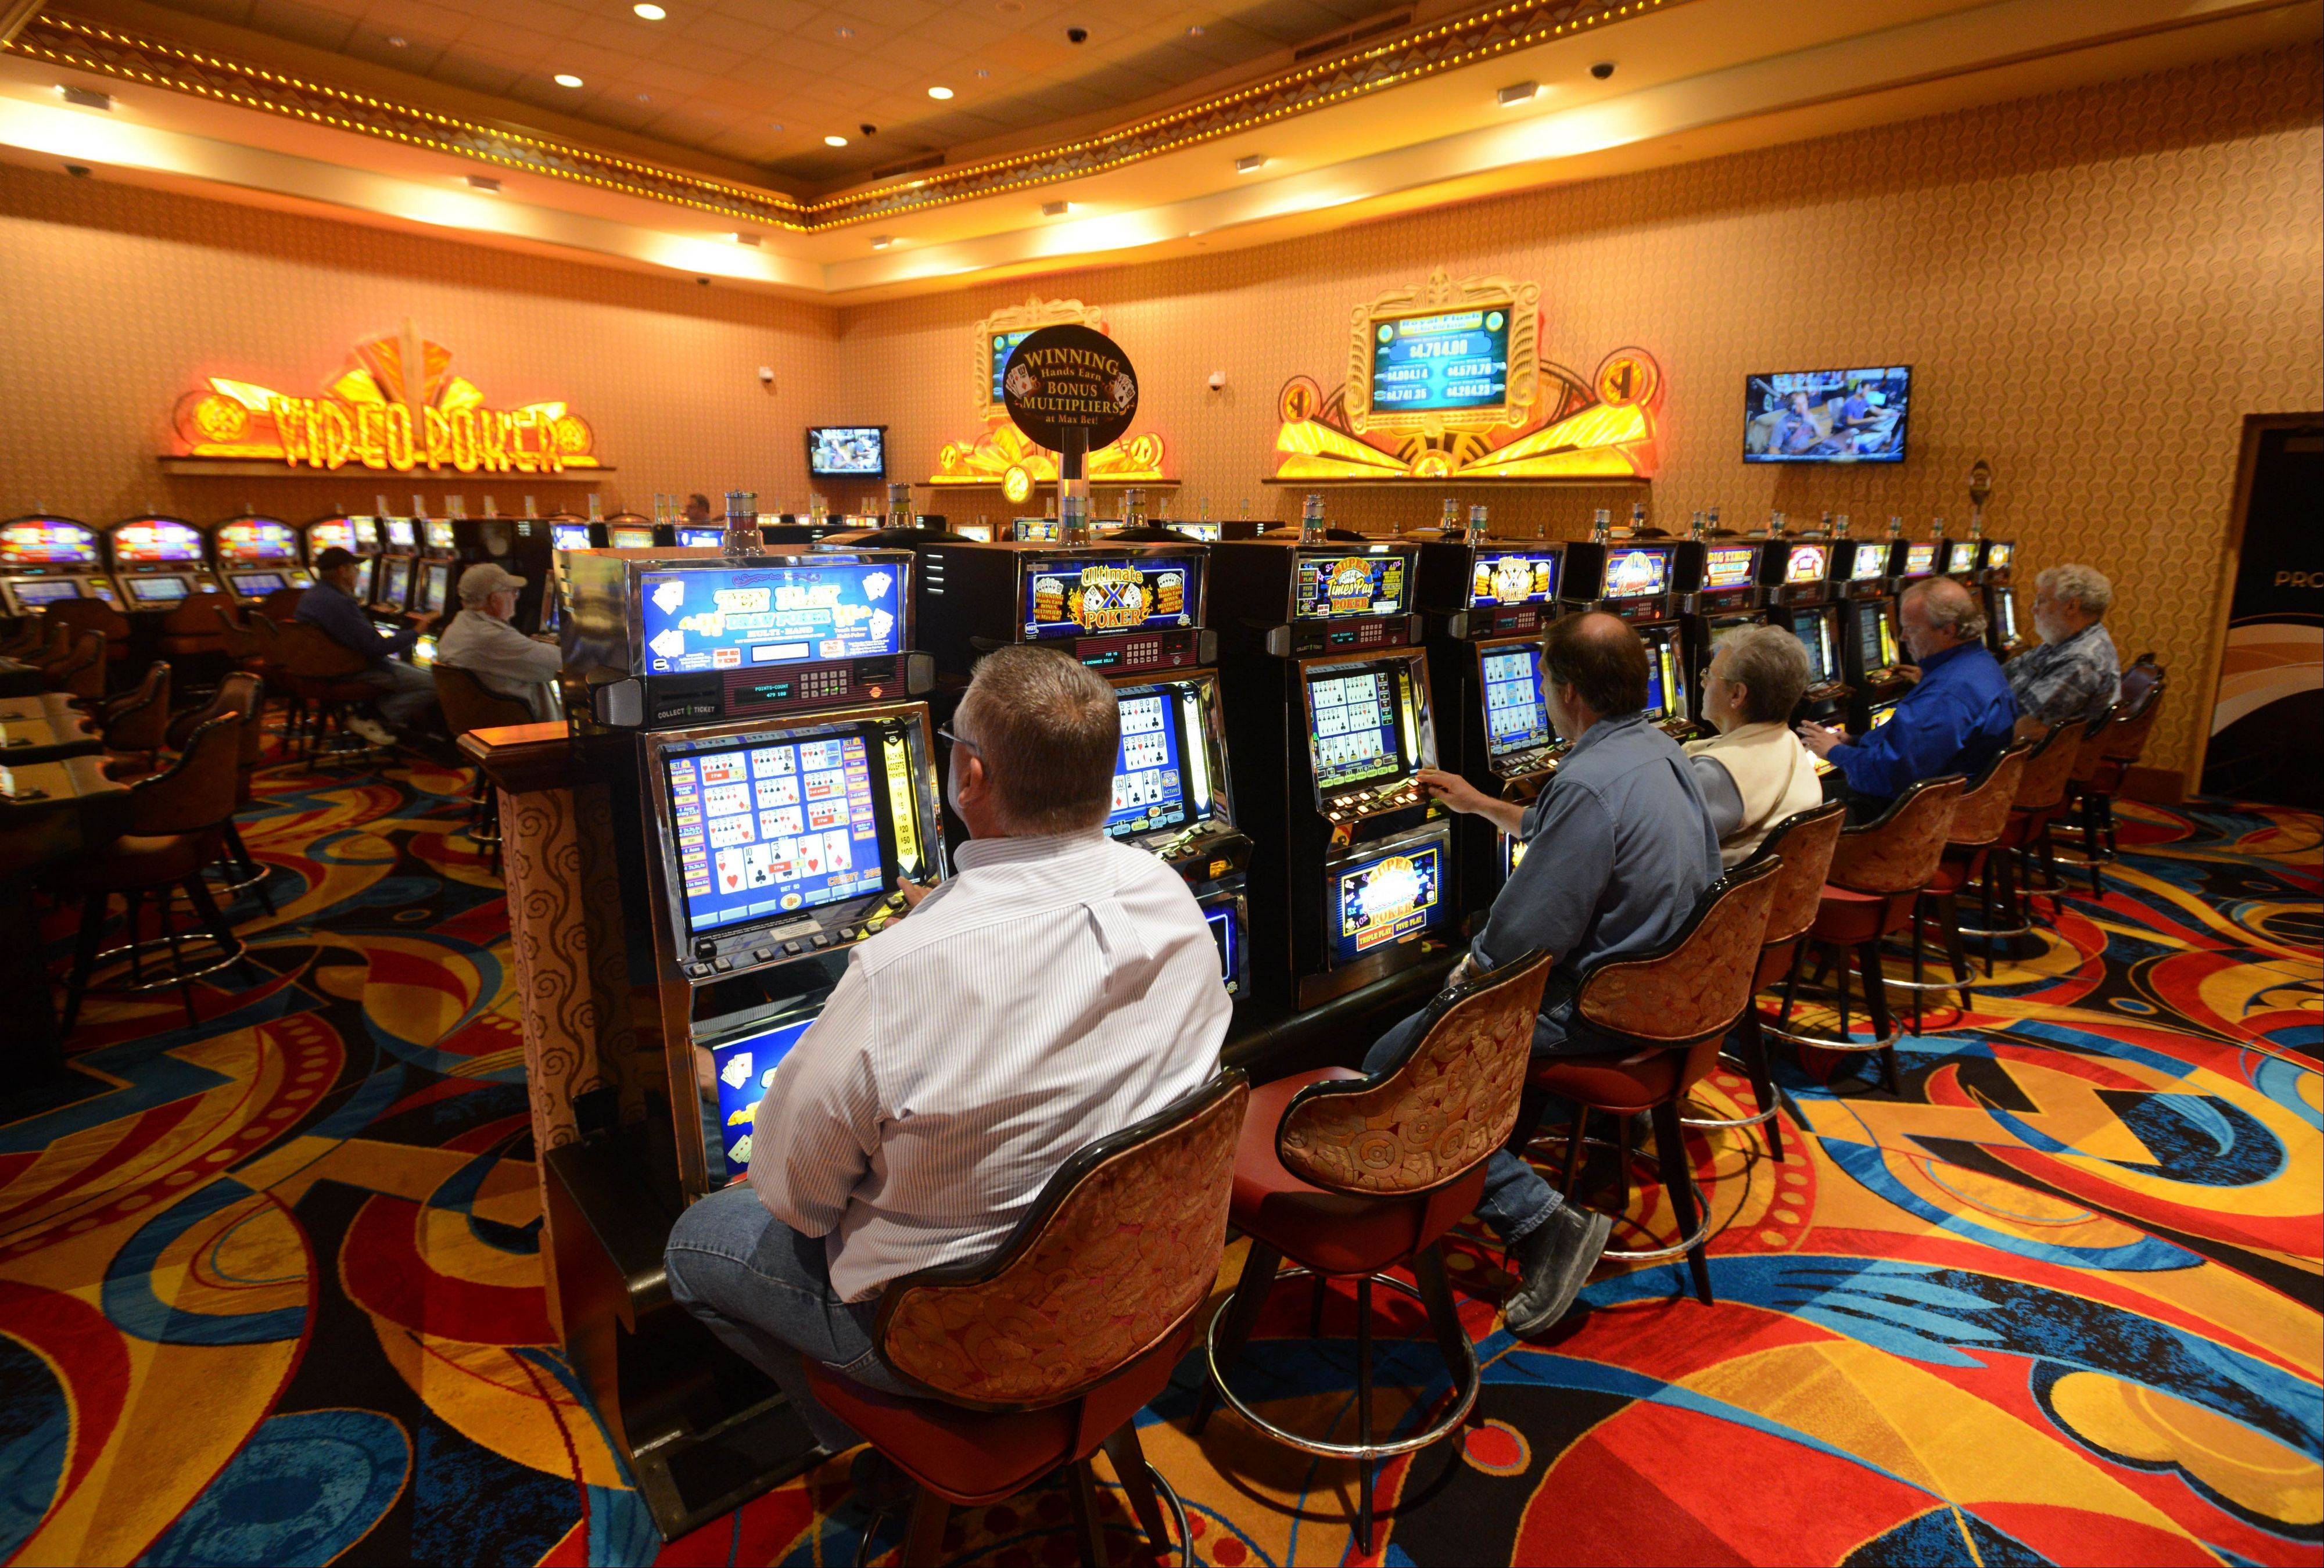 Hollywood park casino event gambling guide online casino